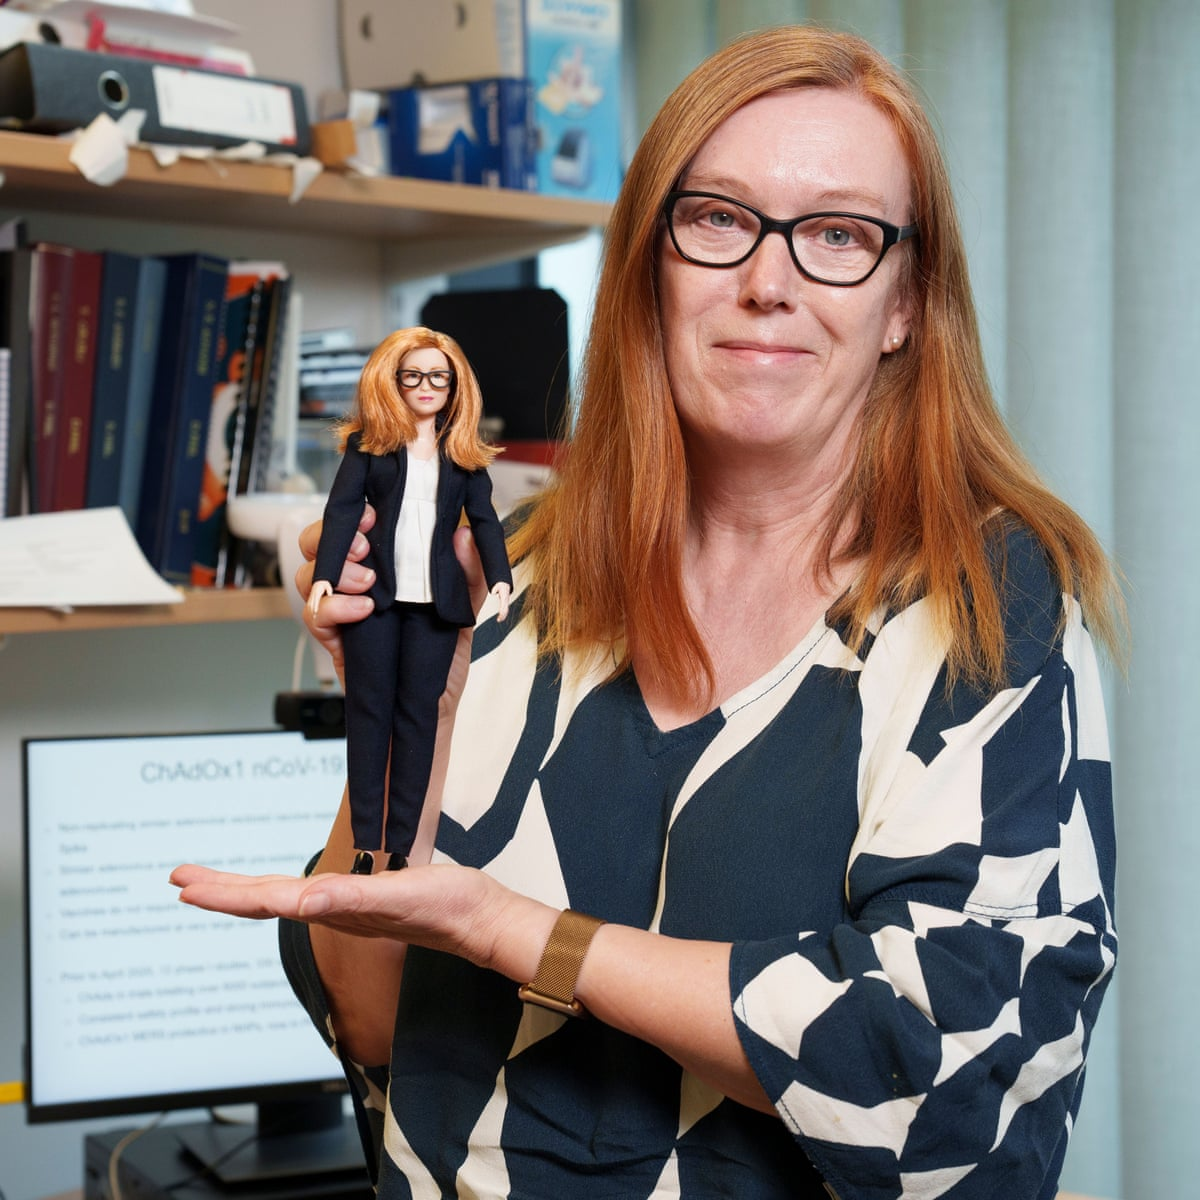 Vaccinologist Barbie: Prof Sarah Gilbert honoured with a doll | Vaccines  and immunisation | The Guardian